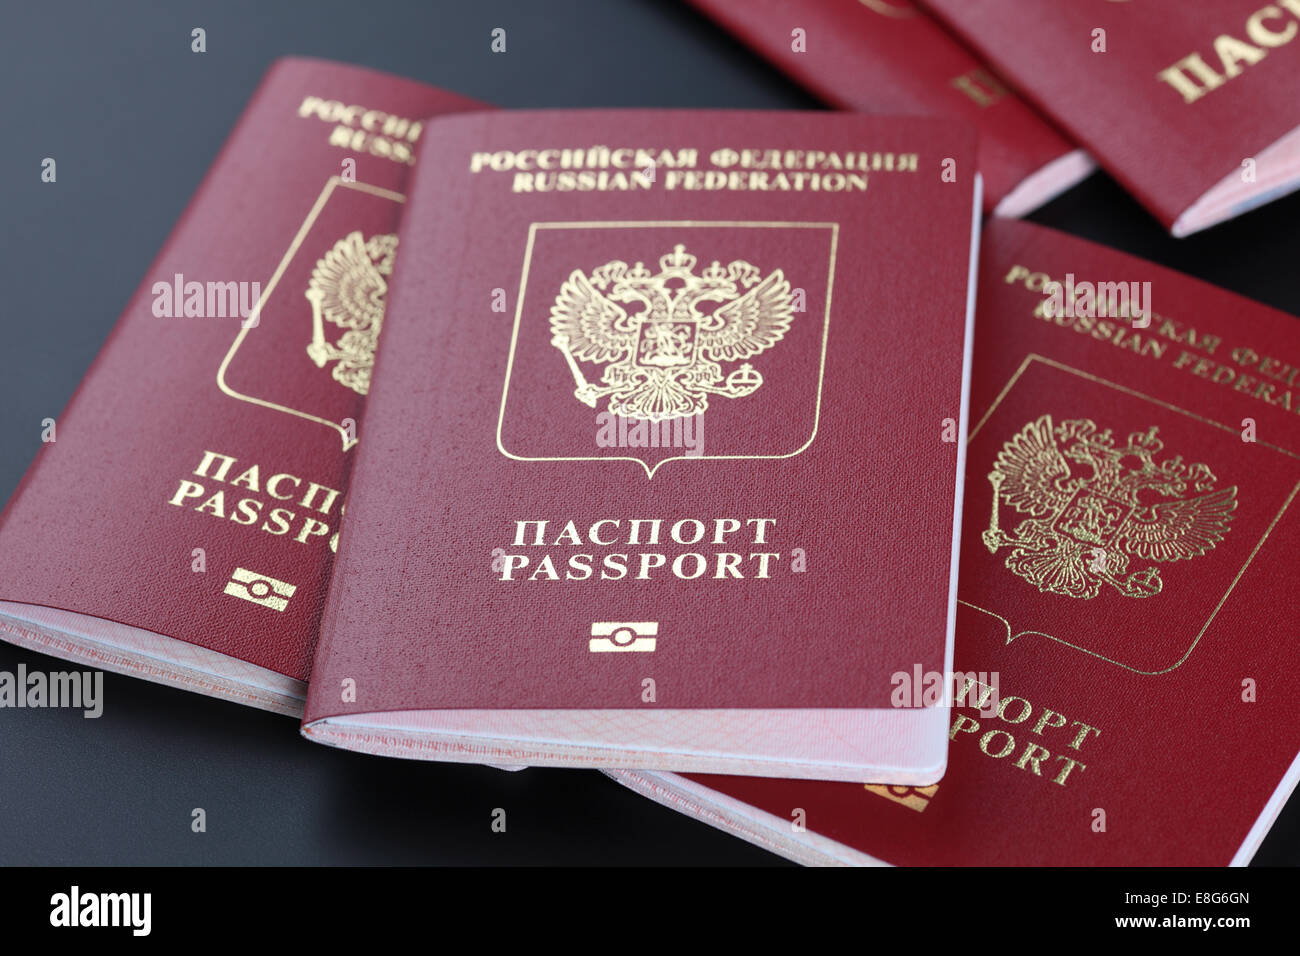 New Russian Federation passports with microchip. - Stock Image